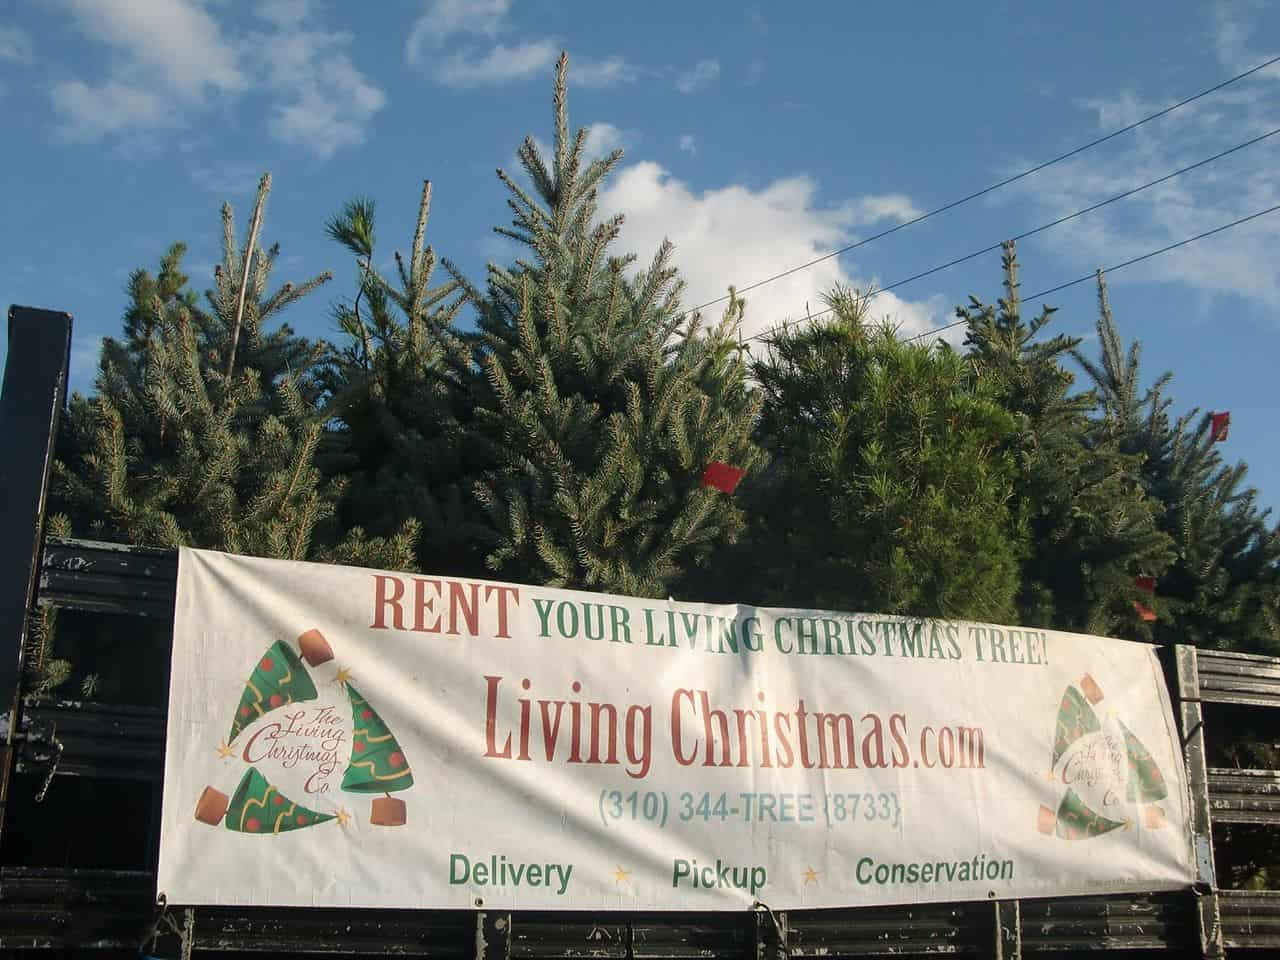 Instead Of Selling Christmas Trees For People To Throw Away At The End Of The Year The Living Christmas Company In California Rents Them Out And Then